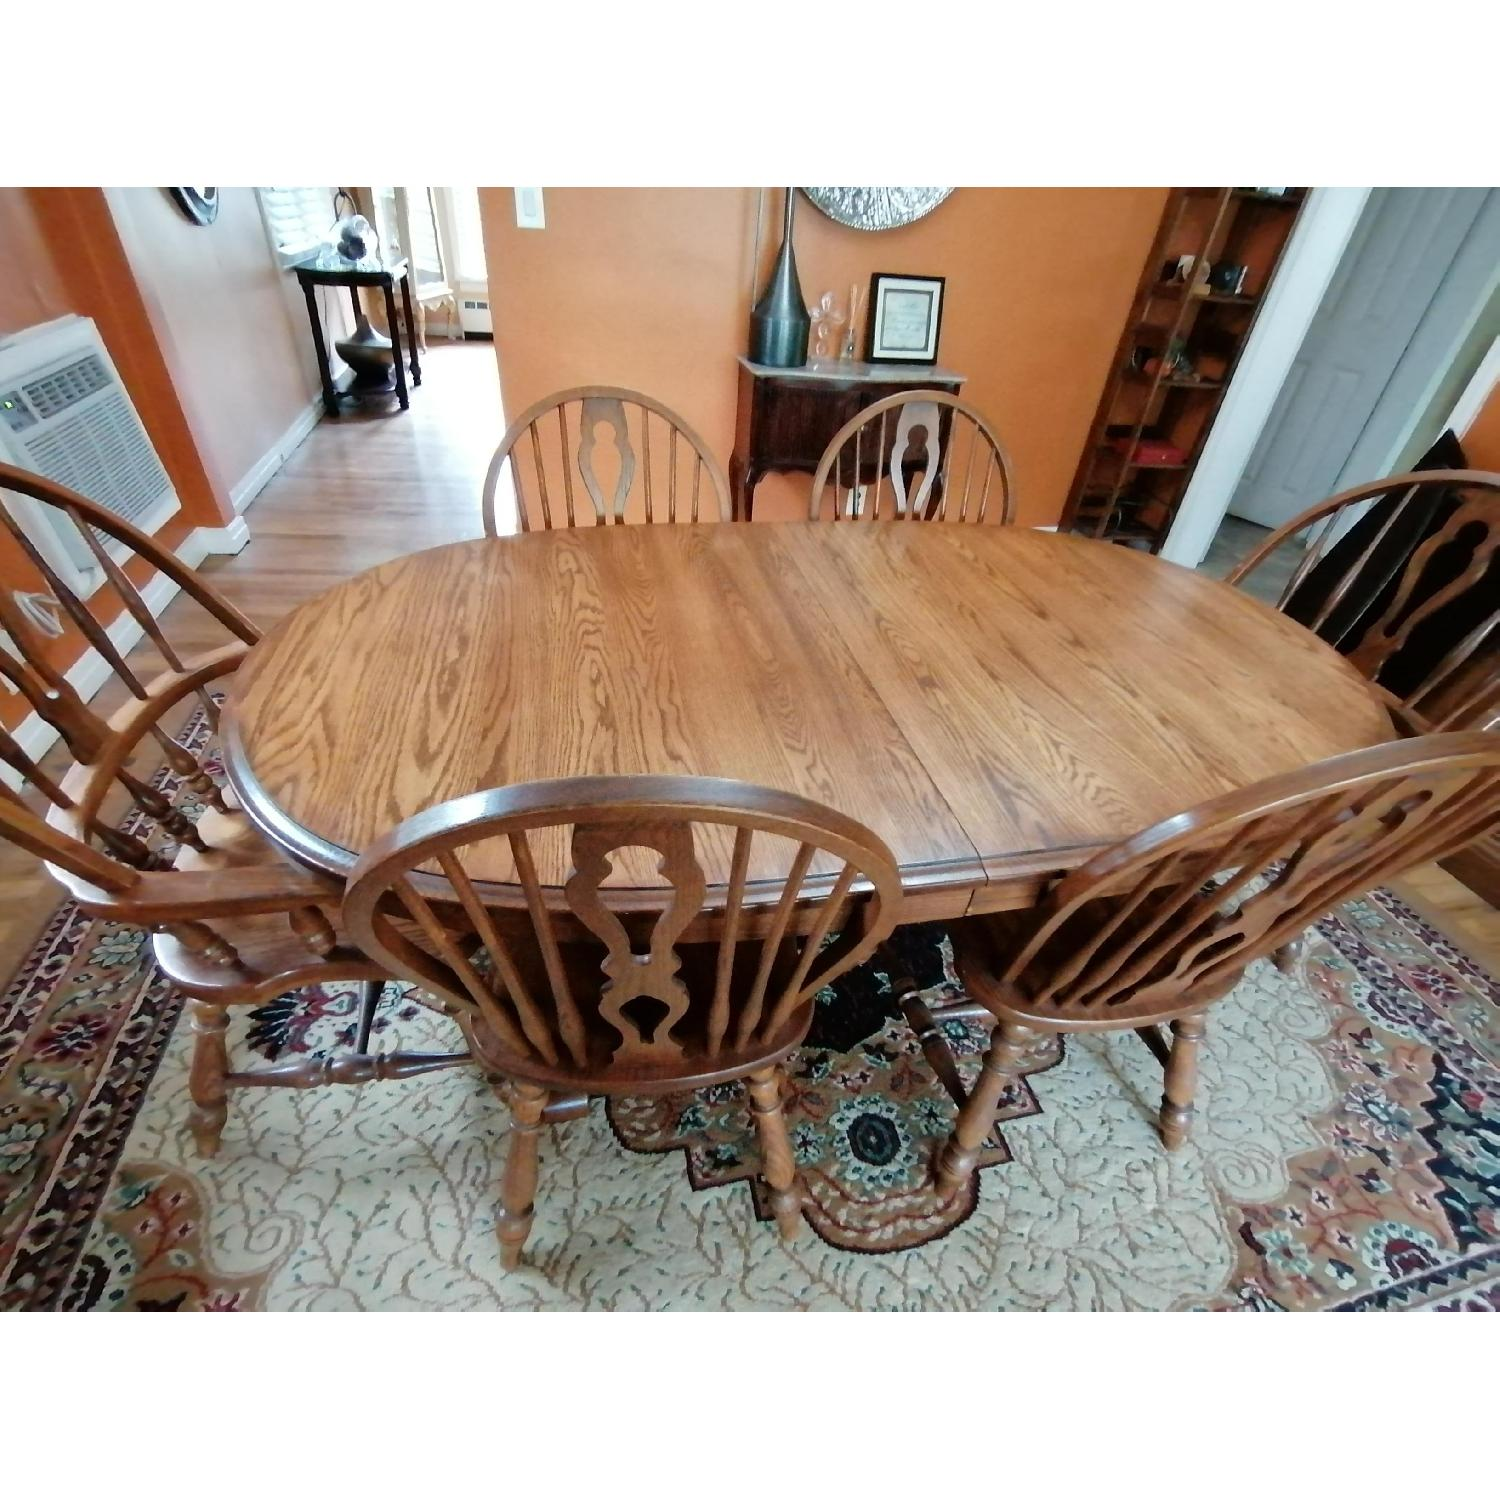 Raymour & Flanigan Extendable Dining Table w/ 6 Chairs - image-1